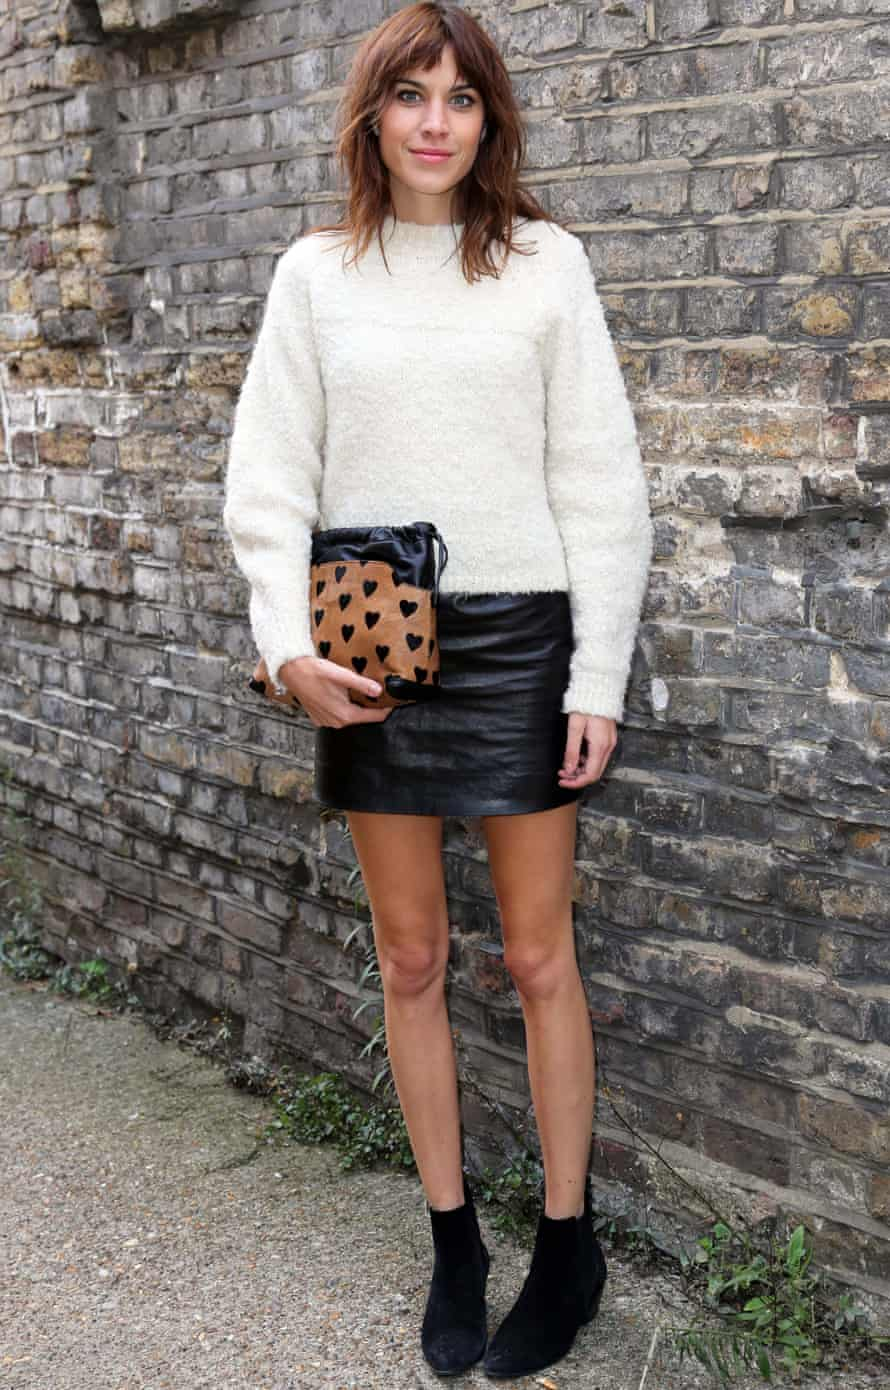 Alexa Chung: praised for her stylishness but to many appears to present an unrealistic body weight